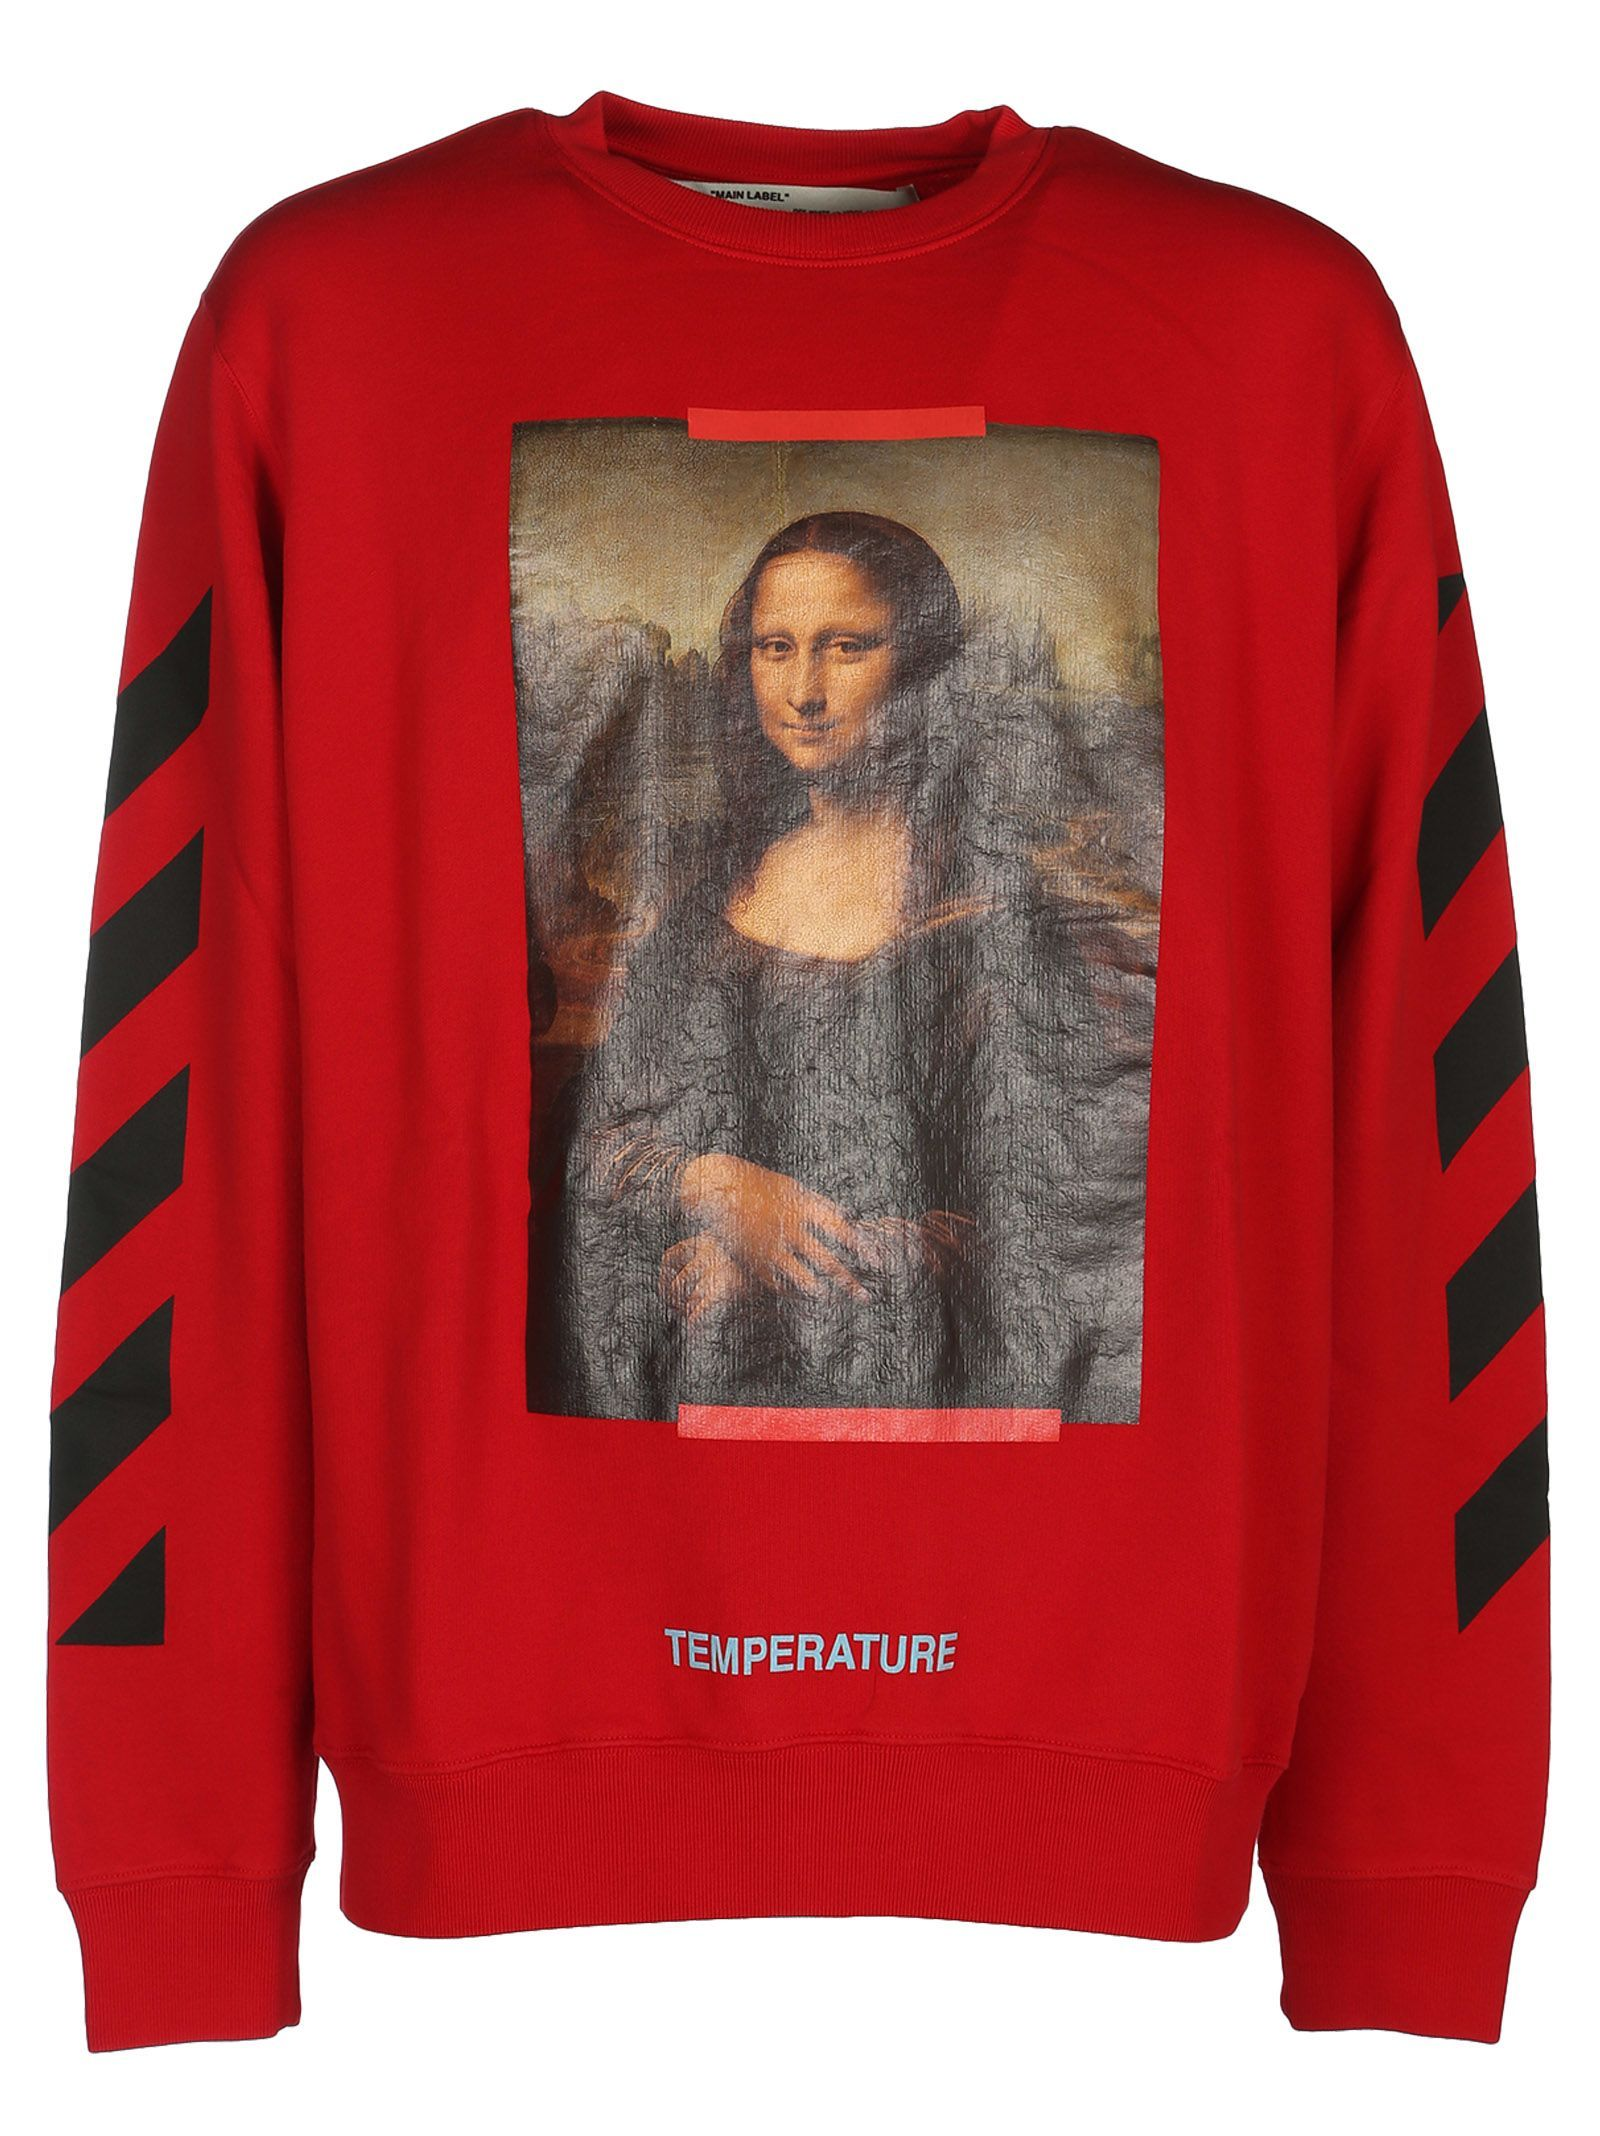 2a51d3eb571 OFF-WHITE OFF-WHITE MONA LISA PRINT SWEATSHIRT.  off-white  cloth ...